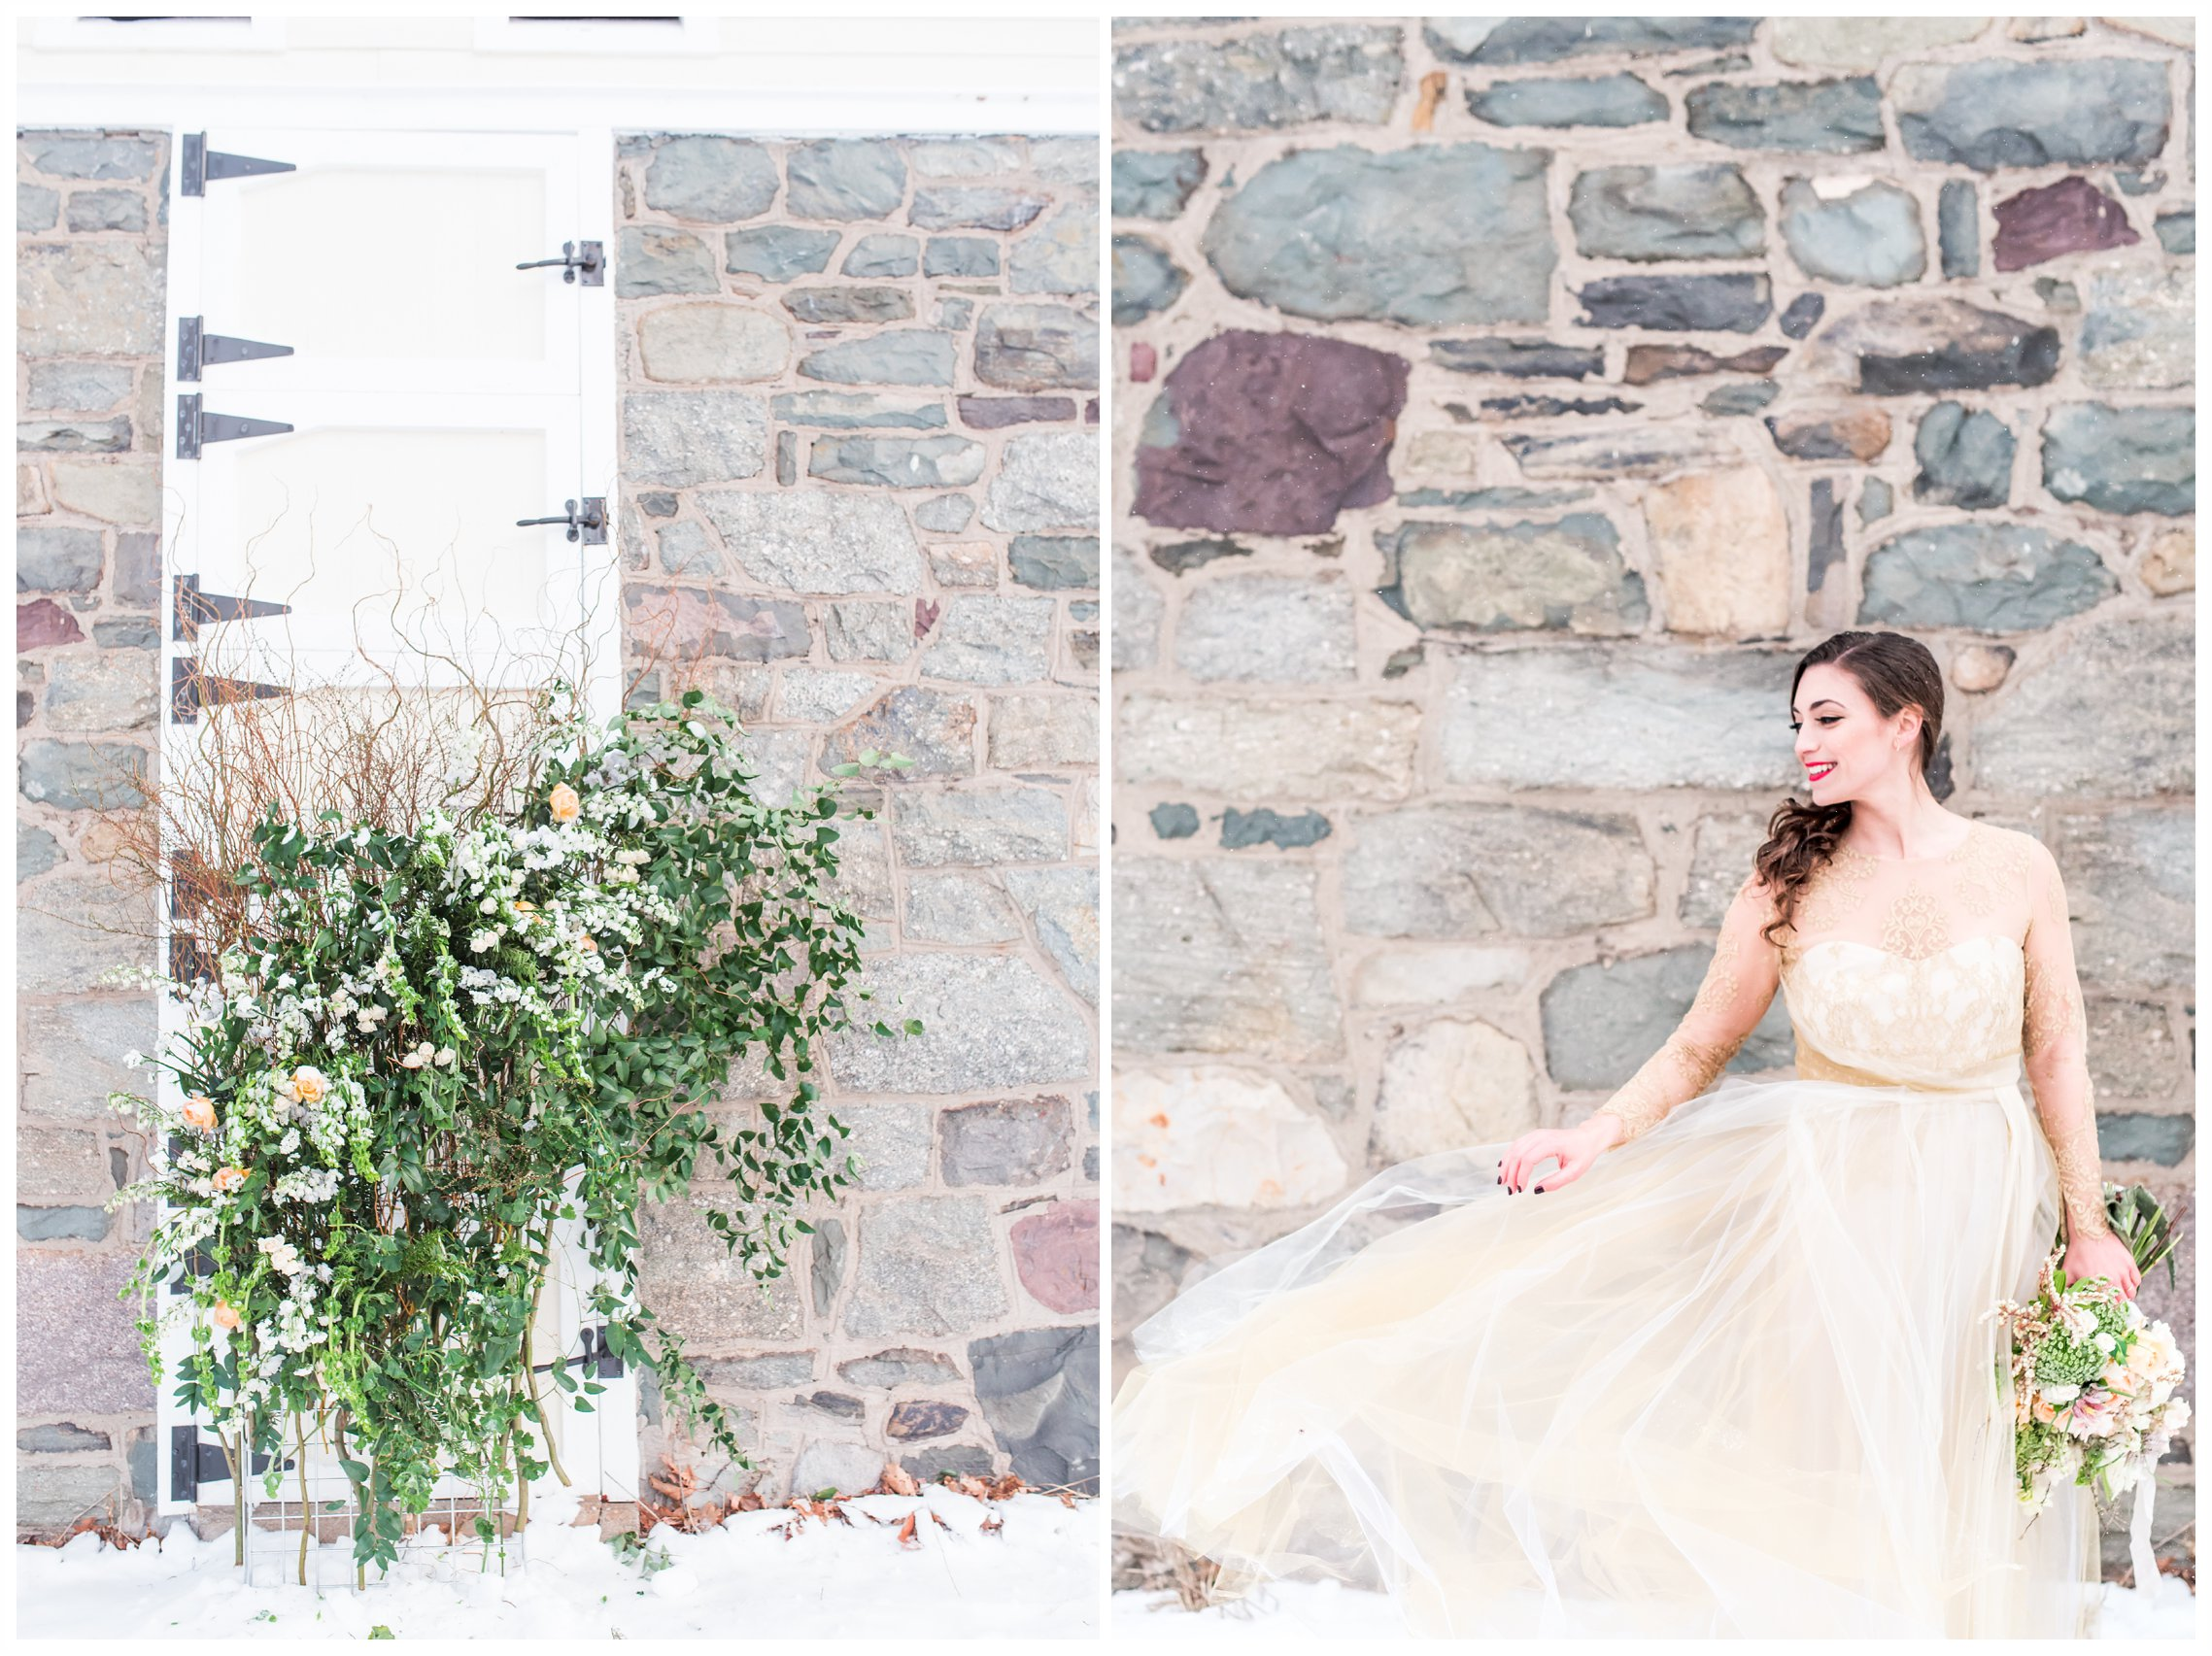 floral wall designs, bride and bridal bouquet